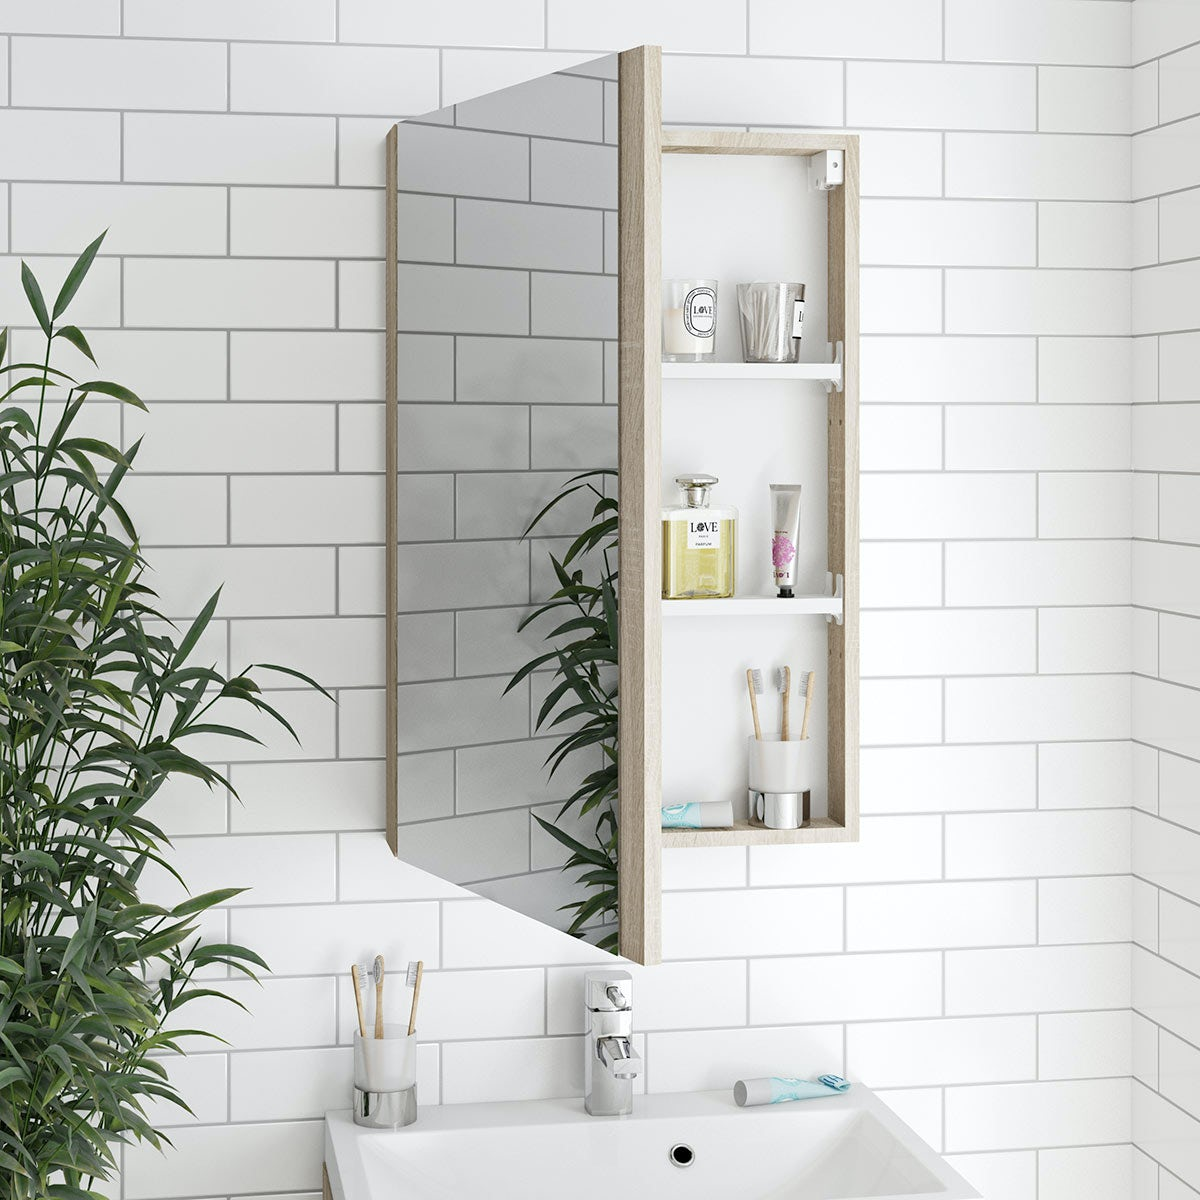 Oak Bathroom Mirror Cabinet Solid Light Oak Bathroom Storage Cabinet ...